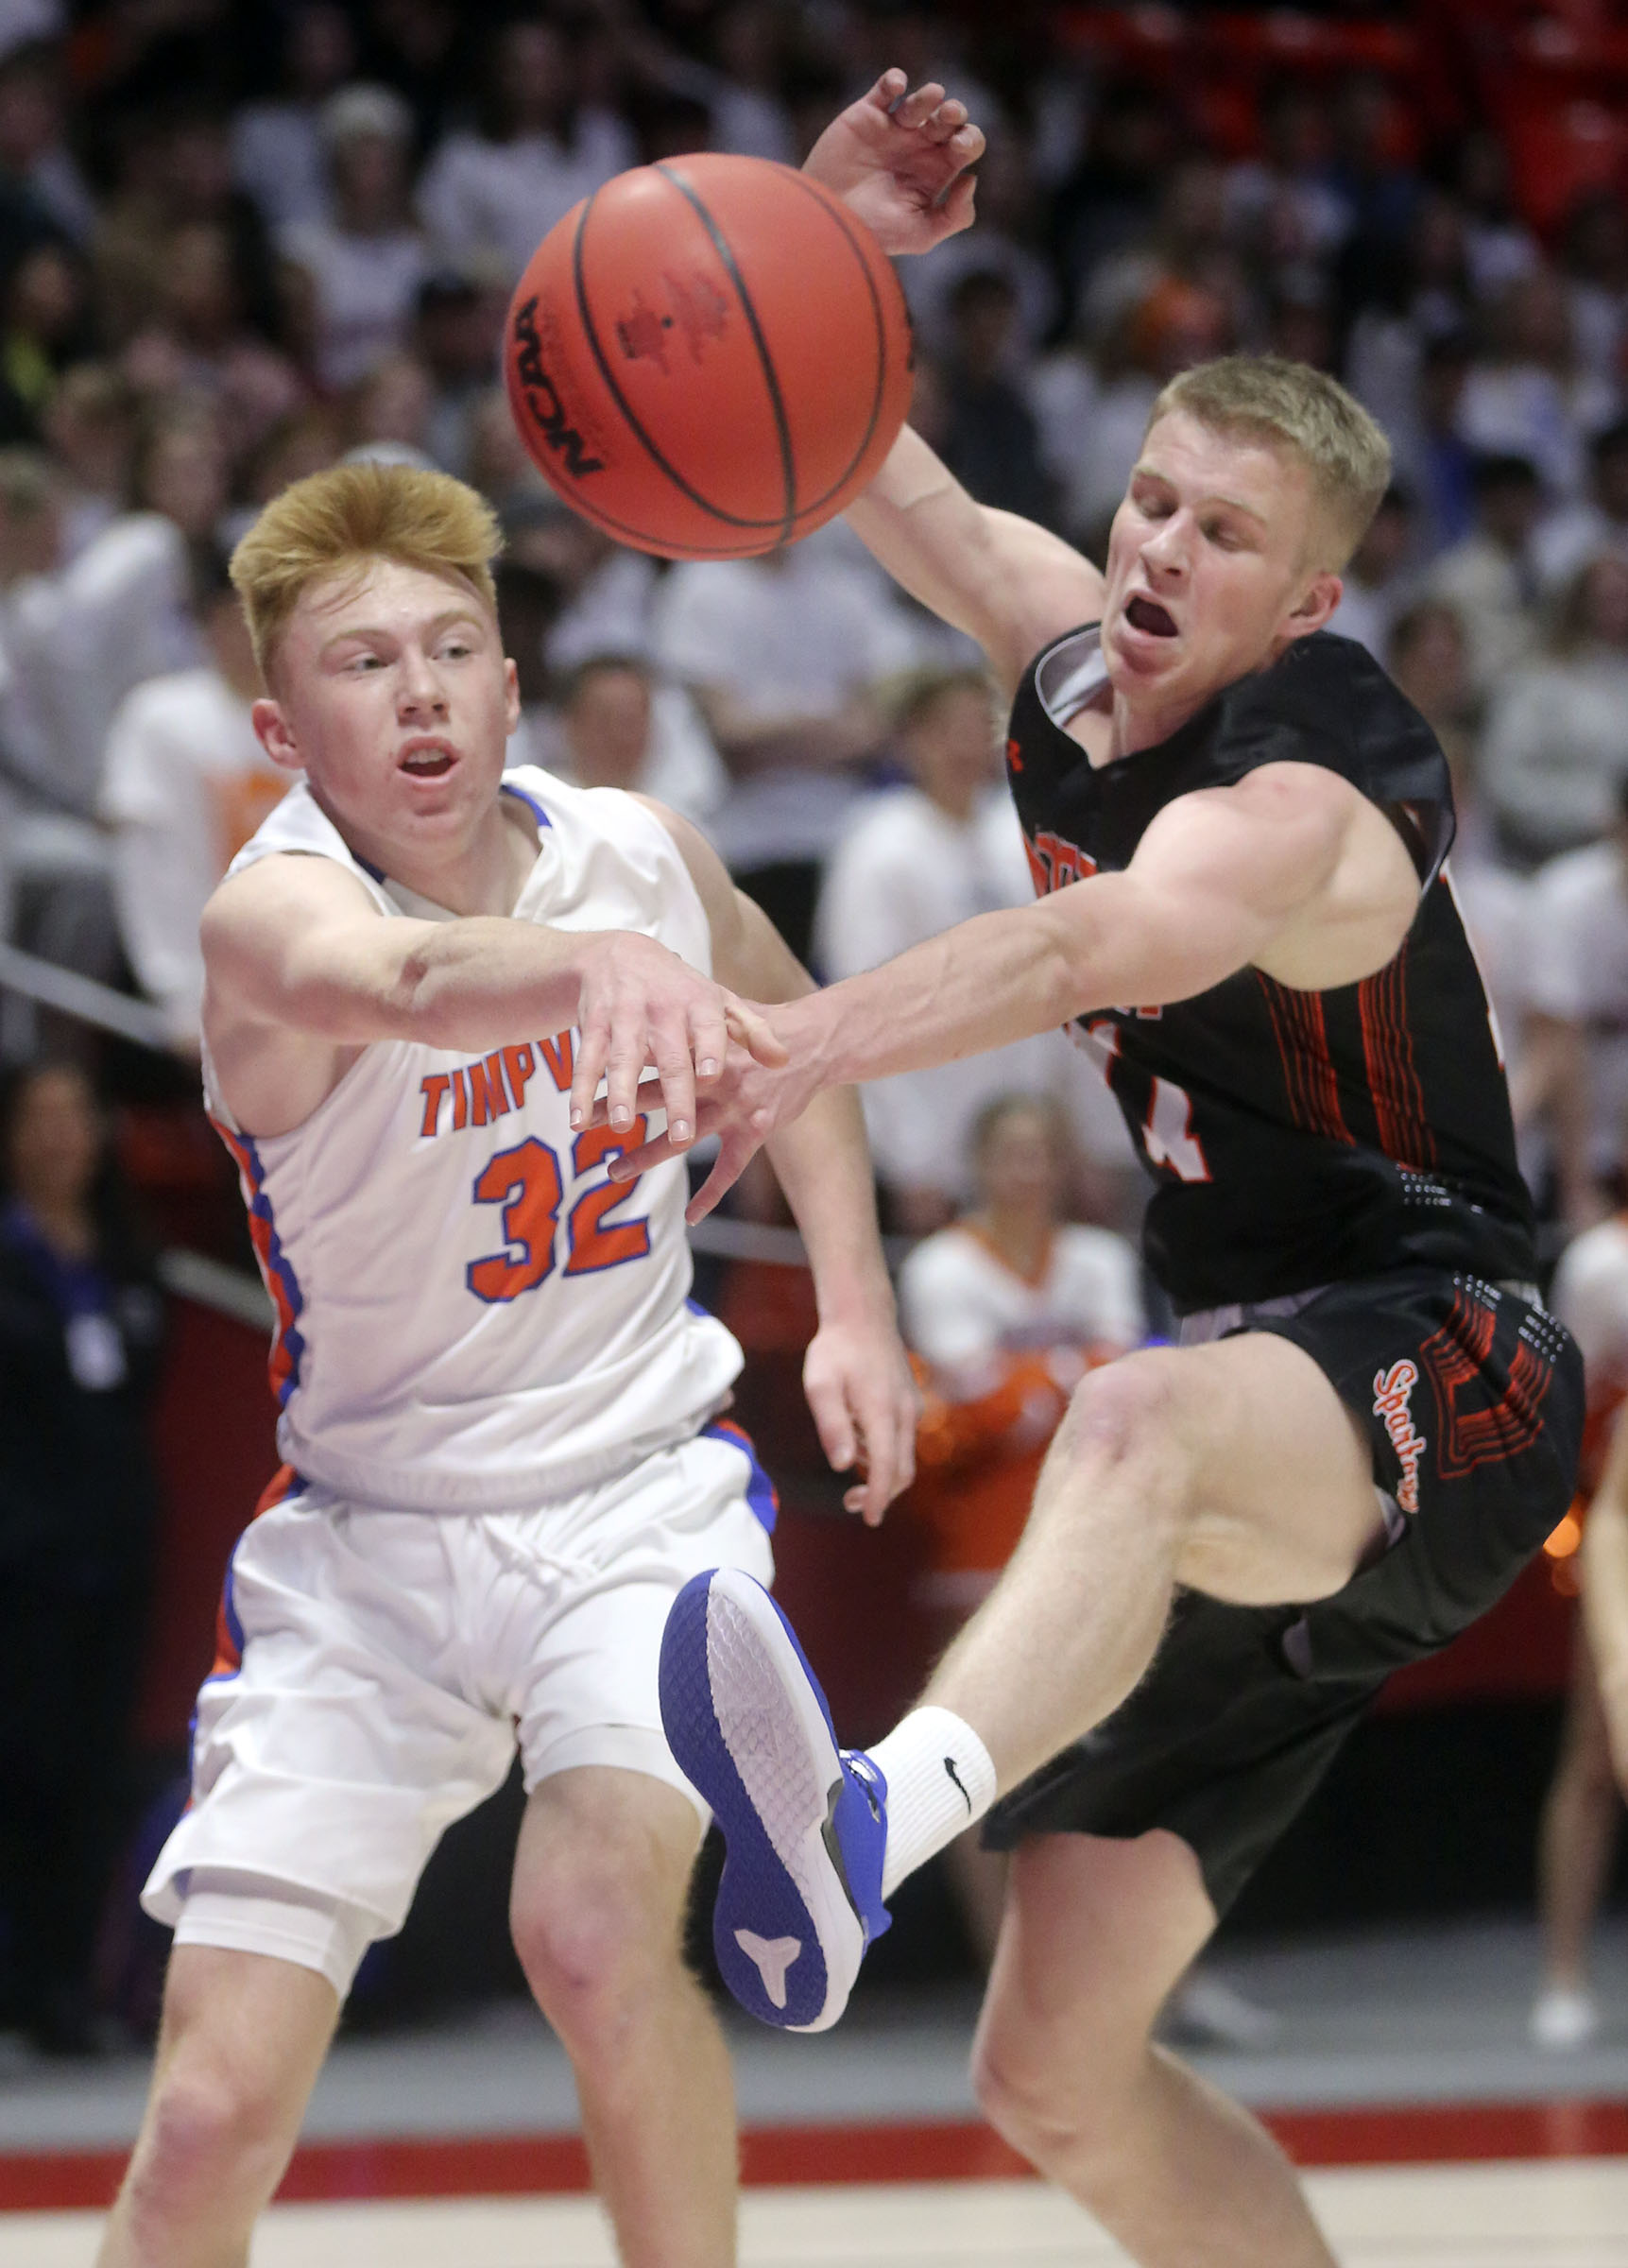 Timpview's Coleman Ford passes the ball around Murray's Jacob Pollei during the 5A boys basketball quarterfinals at the Huntsman Center in Salt Lake City on Tuesday, Feb. 25, 2020. Timpview won 53-32.